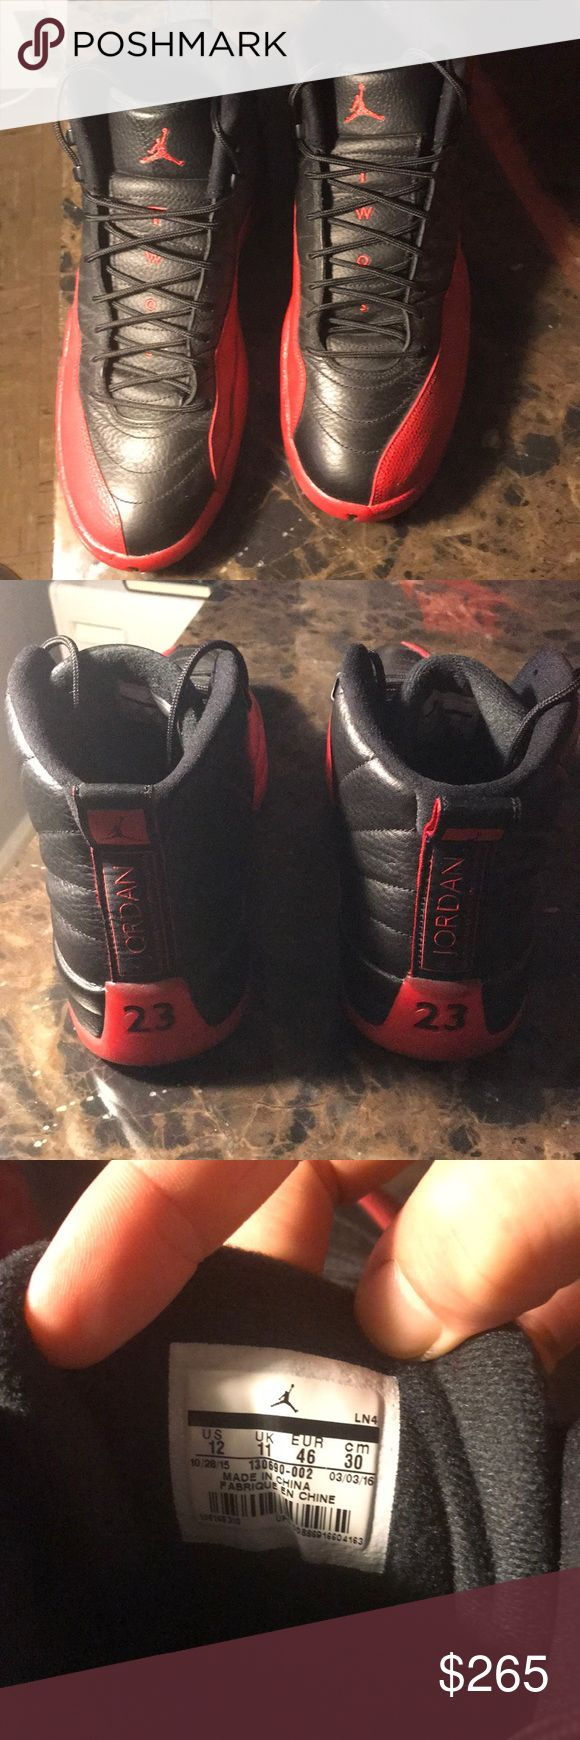 Authentic Air Jordan 12 retro-pre owned Won in a raffle through champs sports Comes with og box/tissue paper Excellent condition Only worn 4 times Air Jordan Shoes Athletic Shoes